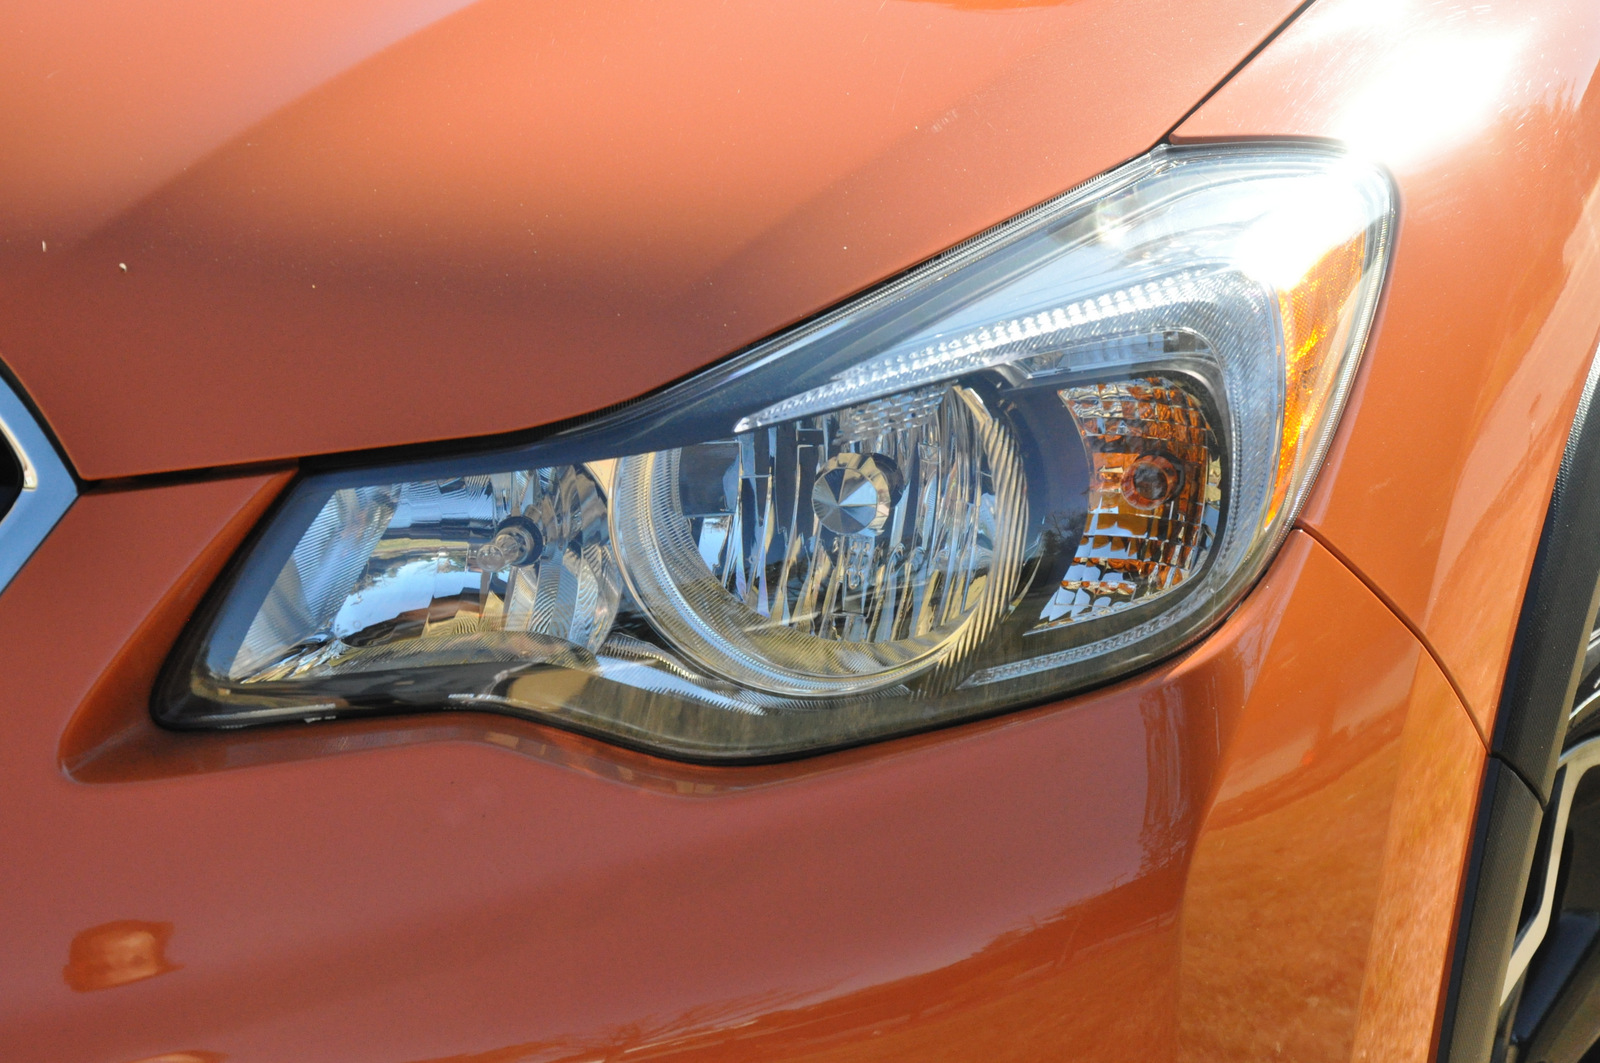 Subaru XV Crosstrek headlight